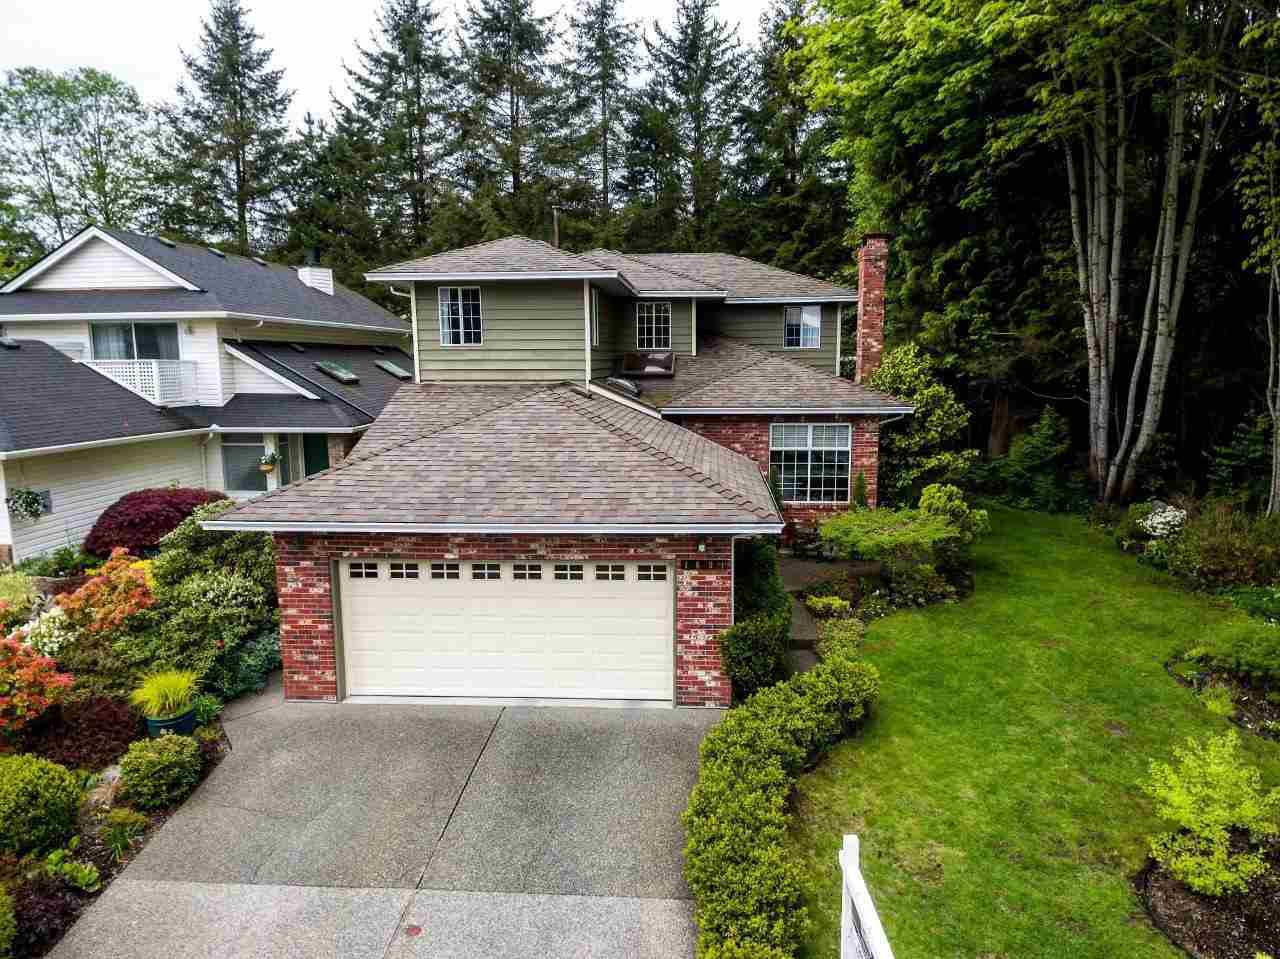 """Main Photo: 1491 PERCY Court in North Vancouver: Indian River House for sale in """"INDIAN RIVER"""" : MLS®# R2165581"""